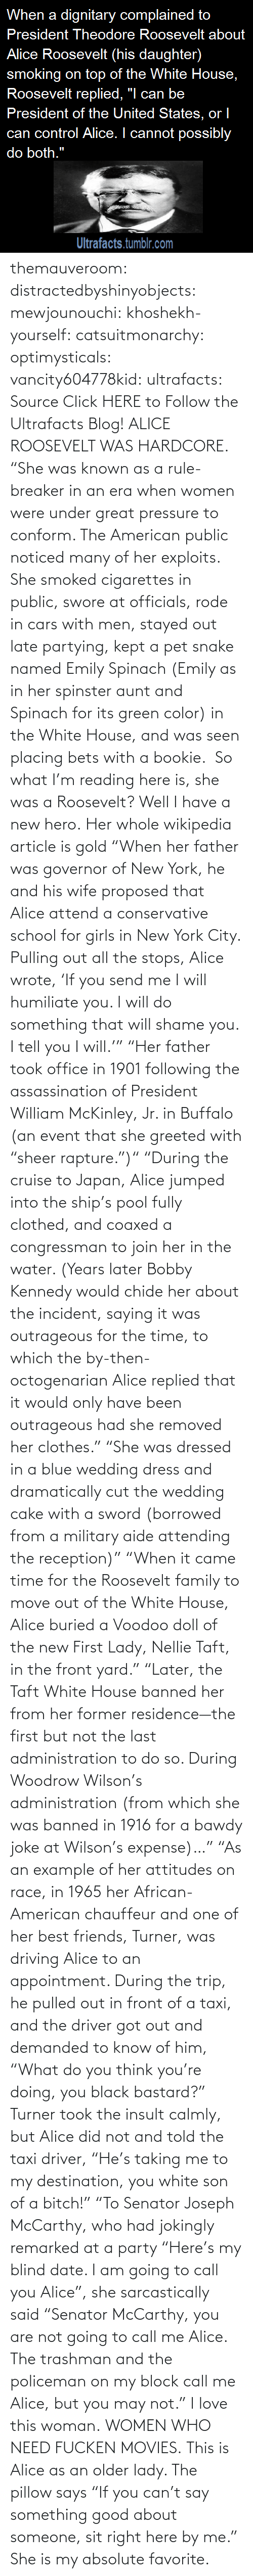 "Example Of: themauveroom: distractedbyshinyobjects:  mewjounouchi:  khoshekh-yourself:  catsuitmonarchy:  optimysticals:  vancity604778kid:  ultrafacts:     Source Click HERE to Follow the Ultrafacts Blog!     ALICE ROOSEVELT WAS HARDCORE. ""She was known as a rule-breaker in an era when women were under great pressure to conform. The American public noticed many of her exploits. She smoked cigarettes in public, swore at officials, rode in cars with men, stayed out late partying, kept a pet snake named Emily Spinach (Emily as in her spinster aunt and Spinach for its green color) in the White House, and was seen placing bets with a bookie.    So what I'm reading here is, she was a Roosevelt?  Well I have a new hero.  Her whole wikipedia article is gold ""When her father was governor of New York, he and his wife proposed that Alice attend a conservative school for girls in New York City. Pulling out all the stops, Alice wrote, 'If you send me I will humiliate you. I will do something that will shame you. I tell you I will.'"" ""Her father took office in 1901 following the assassination of President William McKinley, Jr. in Buffalo (an event that she greeted with ""sheer rapture."")"" ""During the cruise to Japan, Alice jumped into the ship's pool fully clothed, and coaxed a congressman to join her in the water. (Years later Bobby Kennedy would chide her about the incident, saying it was outrageous for the time, to which the by-then-octogenarian Alice replied that it would only have been outrageous had she removed her clothes."" ""She was dressed in a blue wedding dress and dramatically cut the wedding cake with a sword (borrowed from a military aide attending the reception)"" ""When it came time for the Roosevelt family to move out of the White House, Alice buried a Voodoo doll of the new First Lady, Nellie Taft, in the front yard."" ""Later, the Taft White House banned her from her former residence—the first but not the last administration to do so. During Woodrow Wilson's administration (from which she was banned in 1916 for a bawdy joke at Wilson's expense)…"" ""As an example of her attitudes on race, in 1965 her African-American chauffeur and one of her best friends, Turner, was driving Alice to an appointment. During the trip, he pulled out in front of a taxi, and the driver got out and demanded to know of him, ""What do you think you're doing, you black bastard?"" Turner took the insult calmly, but Alice did not and told the taxi driver, ""He's taking me to my destination, you white son of a bitch!"" ""To Senator Joseph McCarthy, who had jokingly remarked at a party ""Here's my blind date. I am going to call you Alice"", she sarcastically said ""Senator McCarthy, you are not going to call me Alice. The trashman and the policeman on my block call me Alice, but you may not.""  I love this woman.  WOMEN WHO NEED FUCKEN MOVIES.   This is Alice as an older lady. The pillow says ""If you can't say something good about someone, sit right here by me.""  She is my absolute favorite."